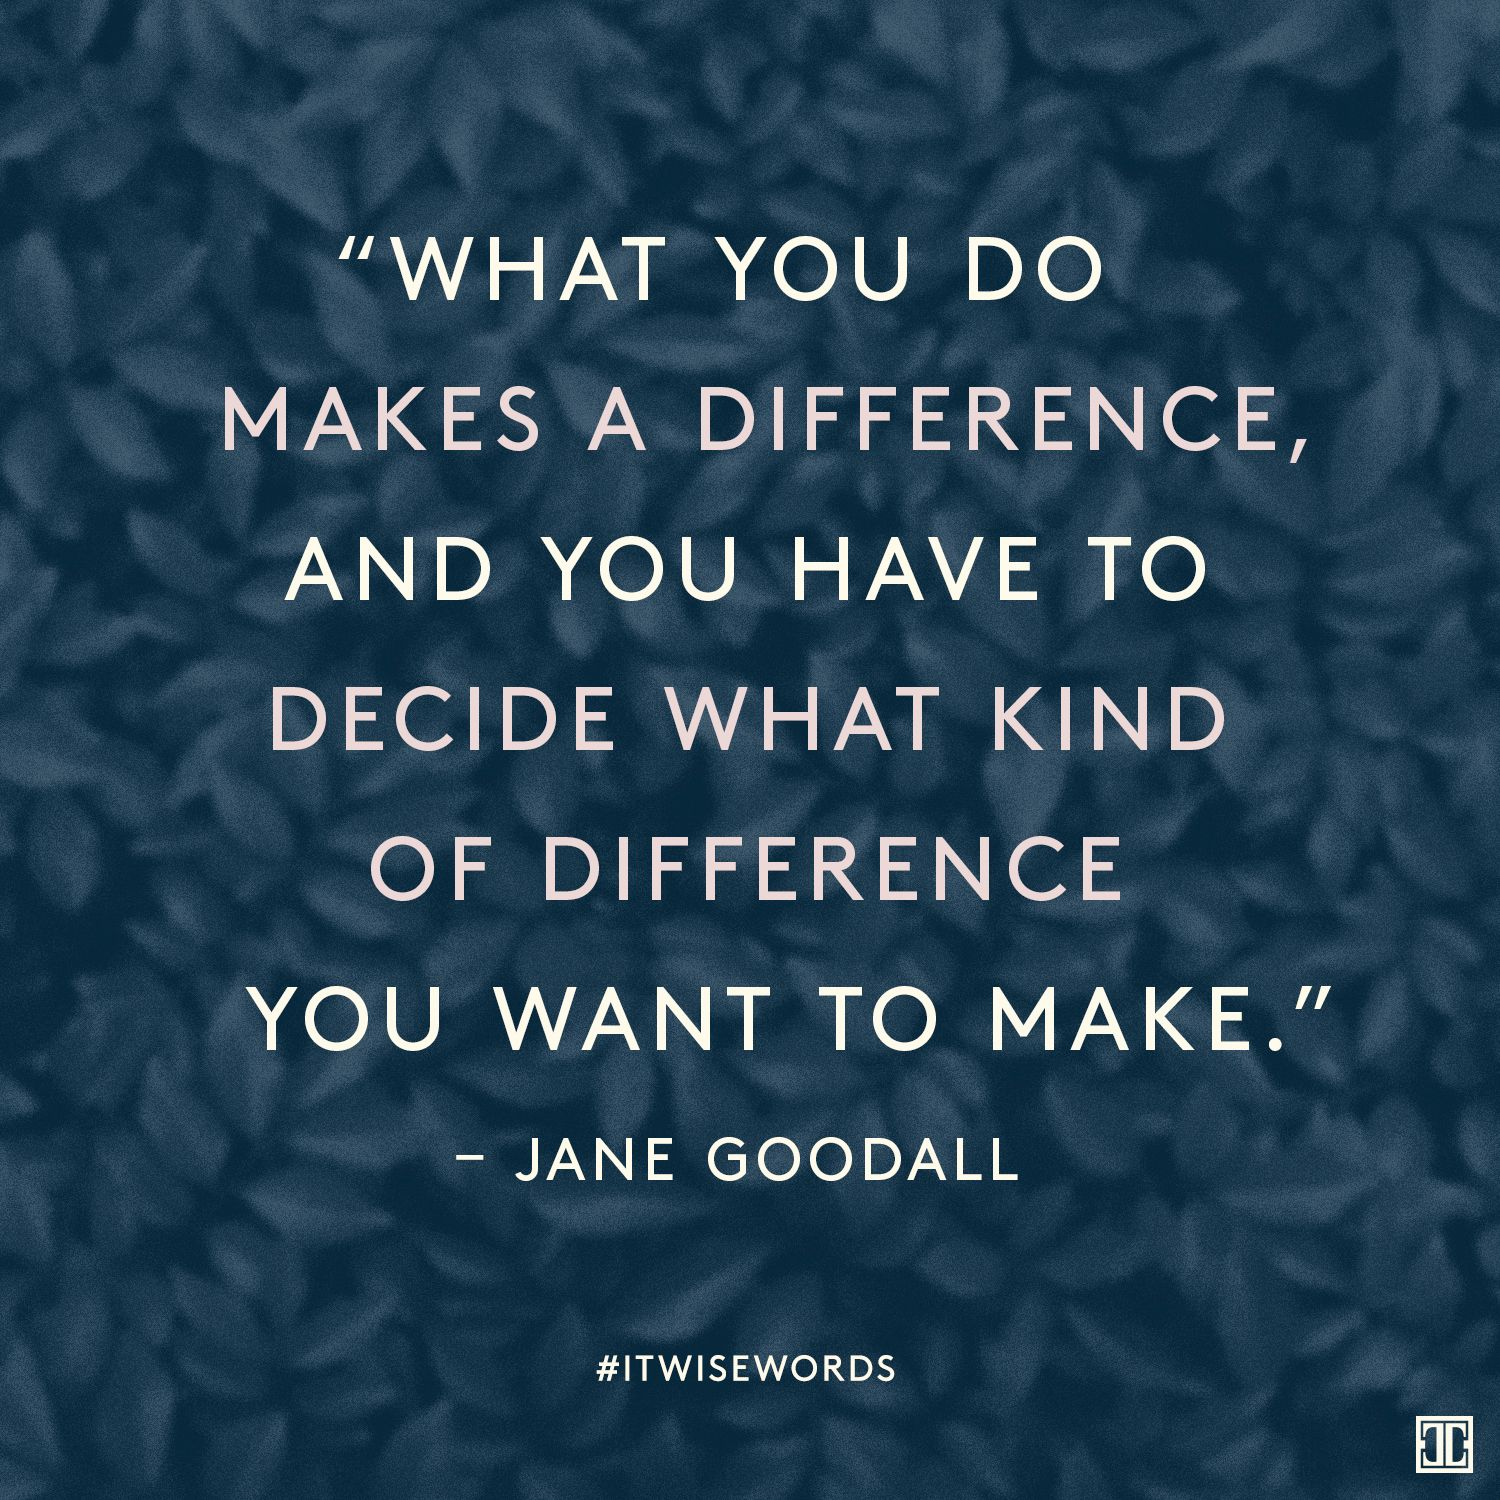 Make A Difference Quotes Wisewords From Jane Goodall  Choose Wisely Jane Goodall And